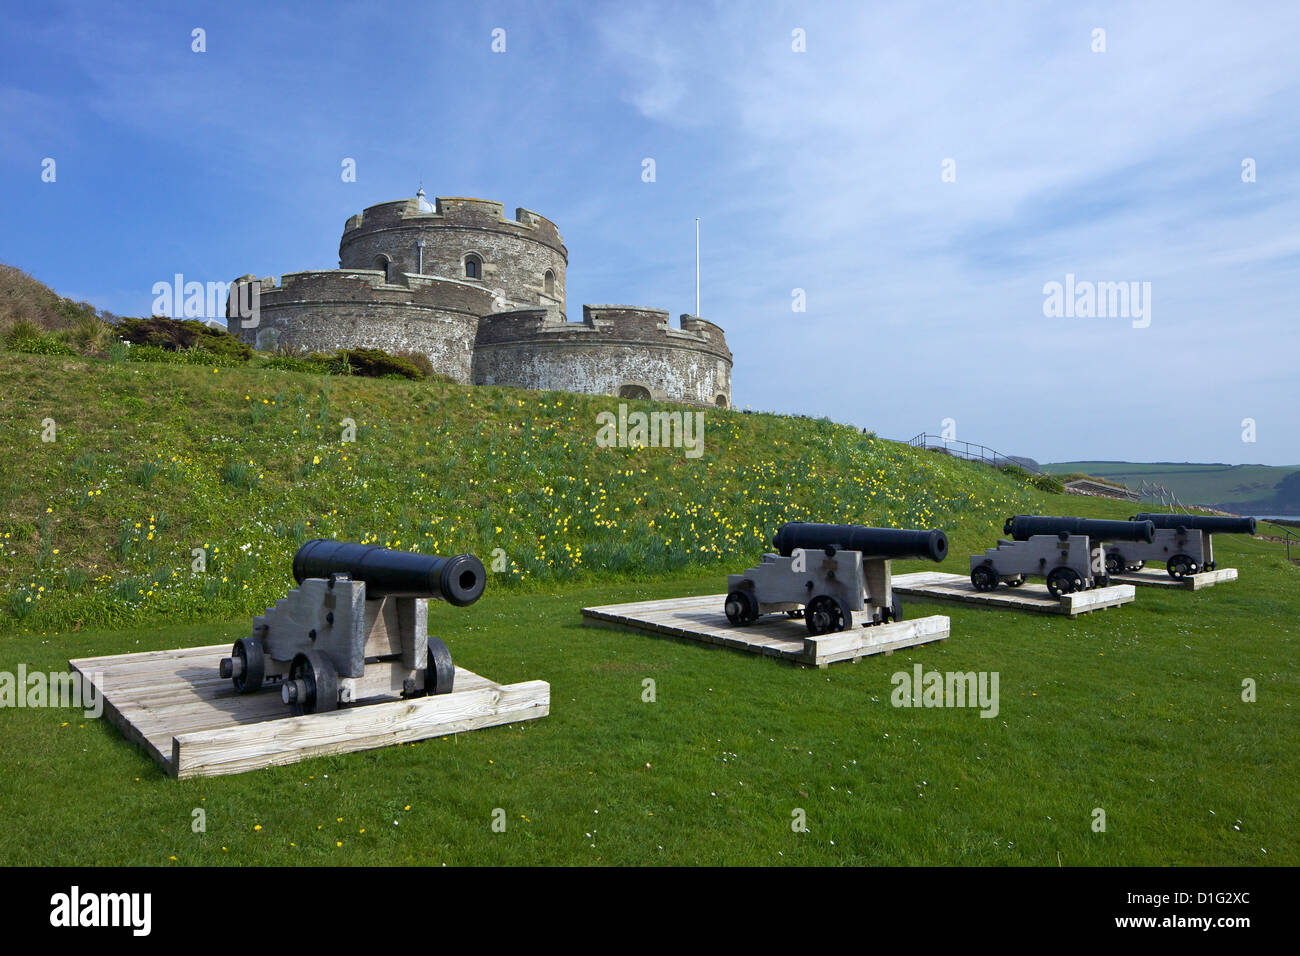 St. Mawes Castle, an artillery fortress built by Henry VIII, Cornwall, England, United Kingdom, Europe - Stock Image